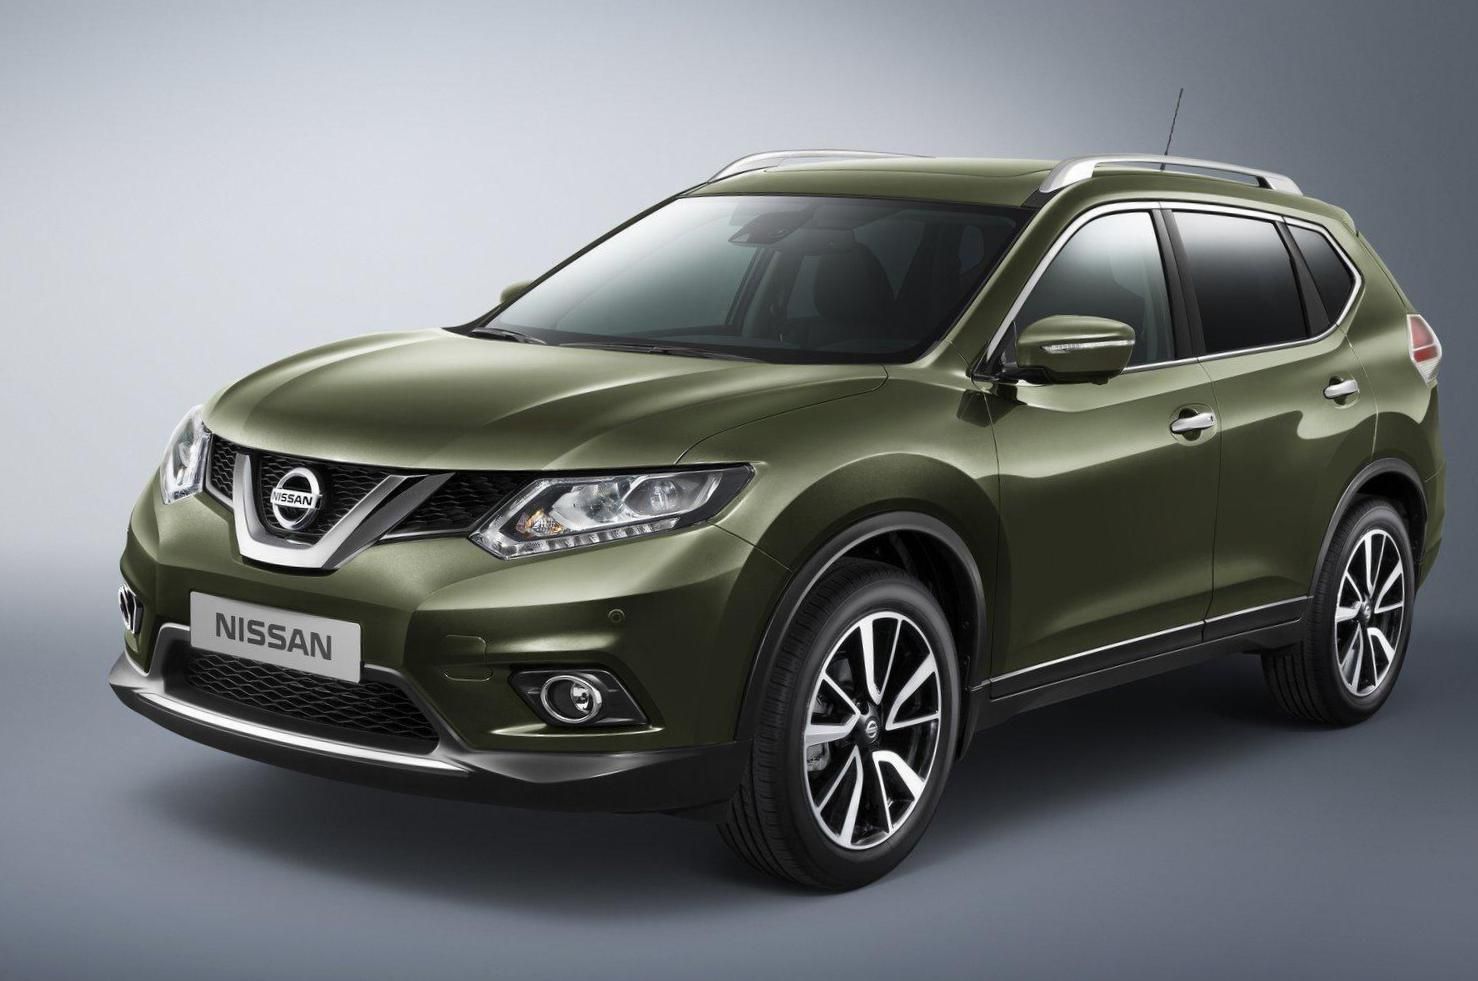 2018 Nissan Murano Design, Specs, Engine and Release Date